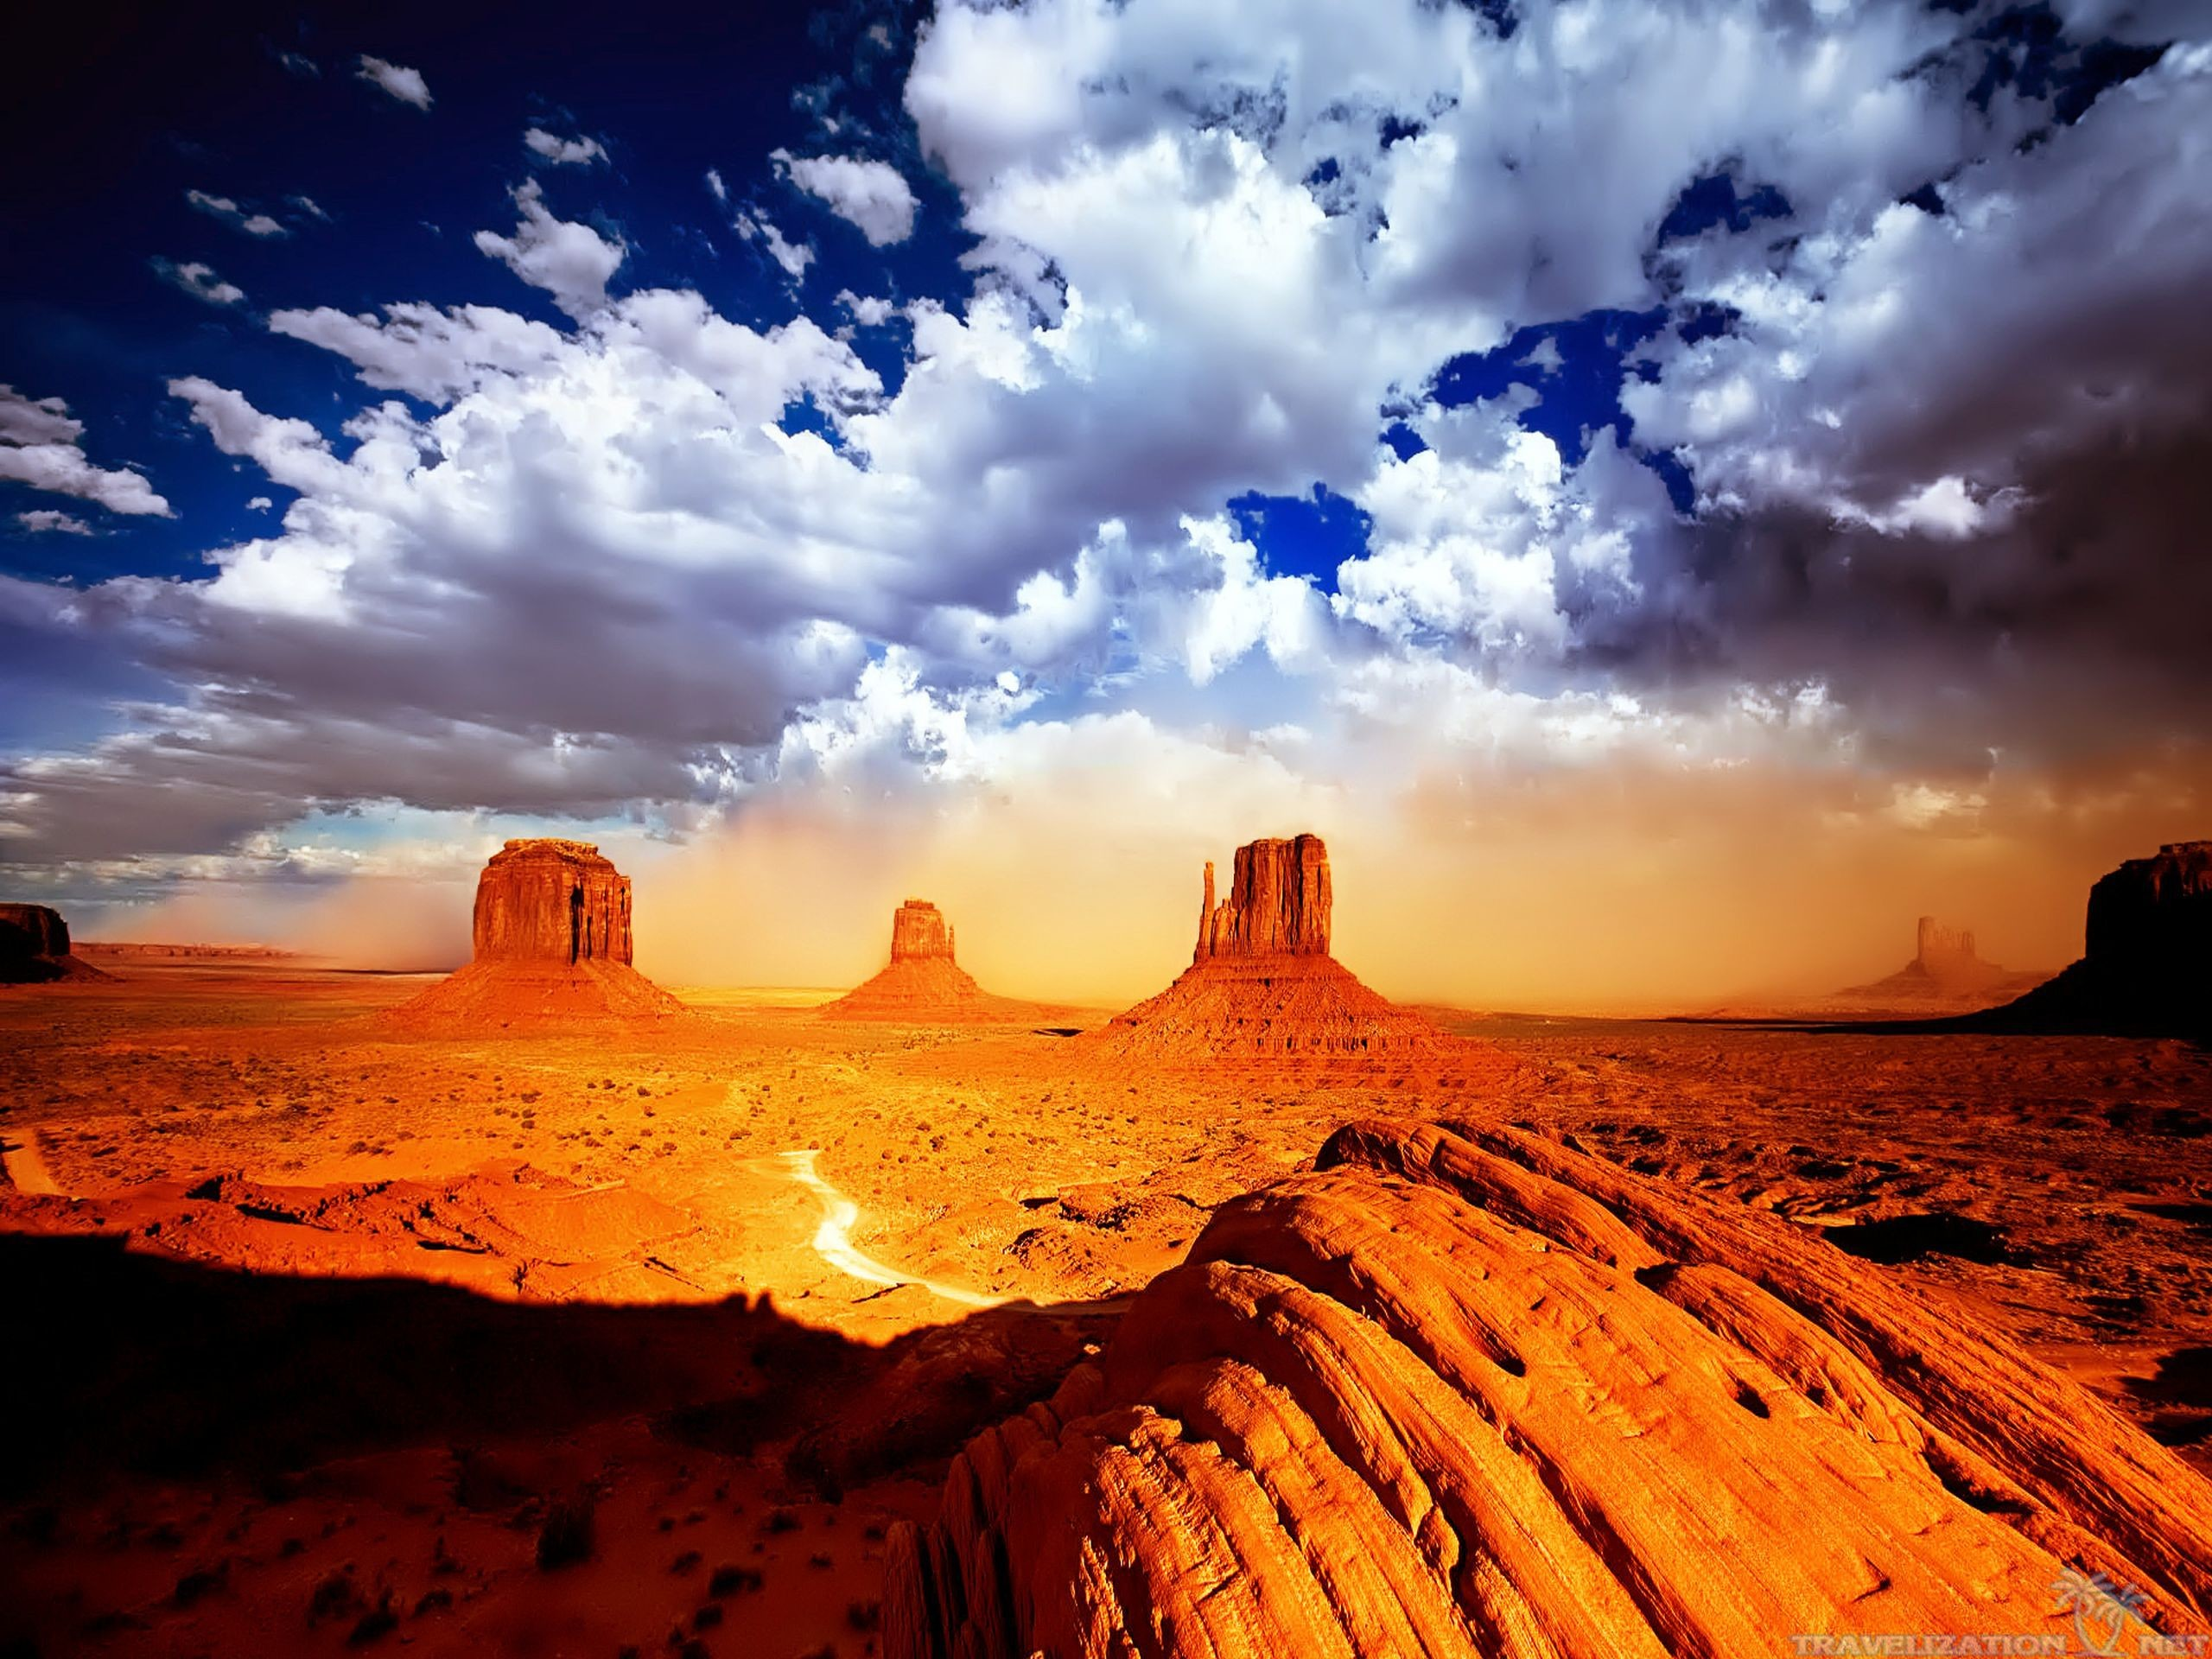 arizona desert scenes wallpaper 29 images